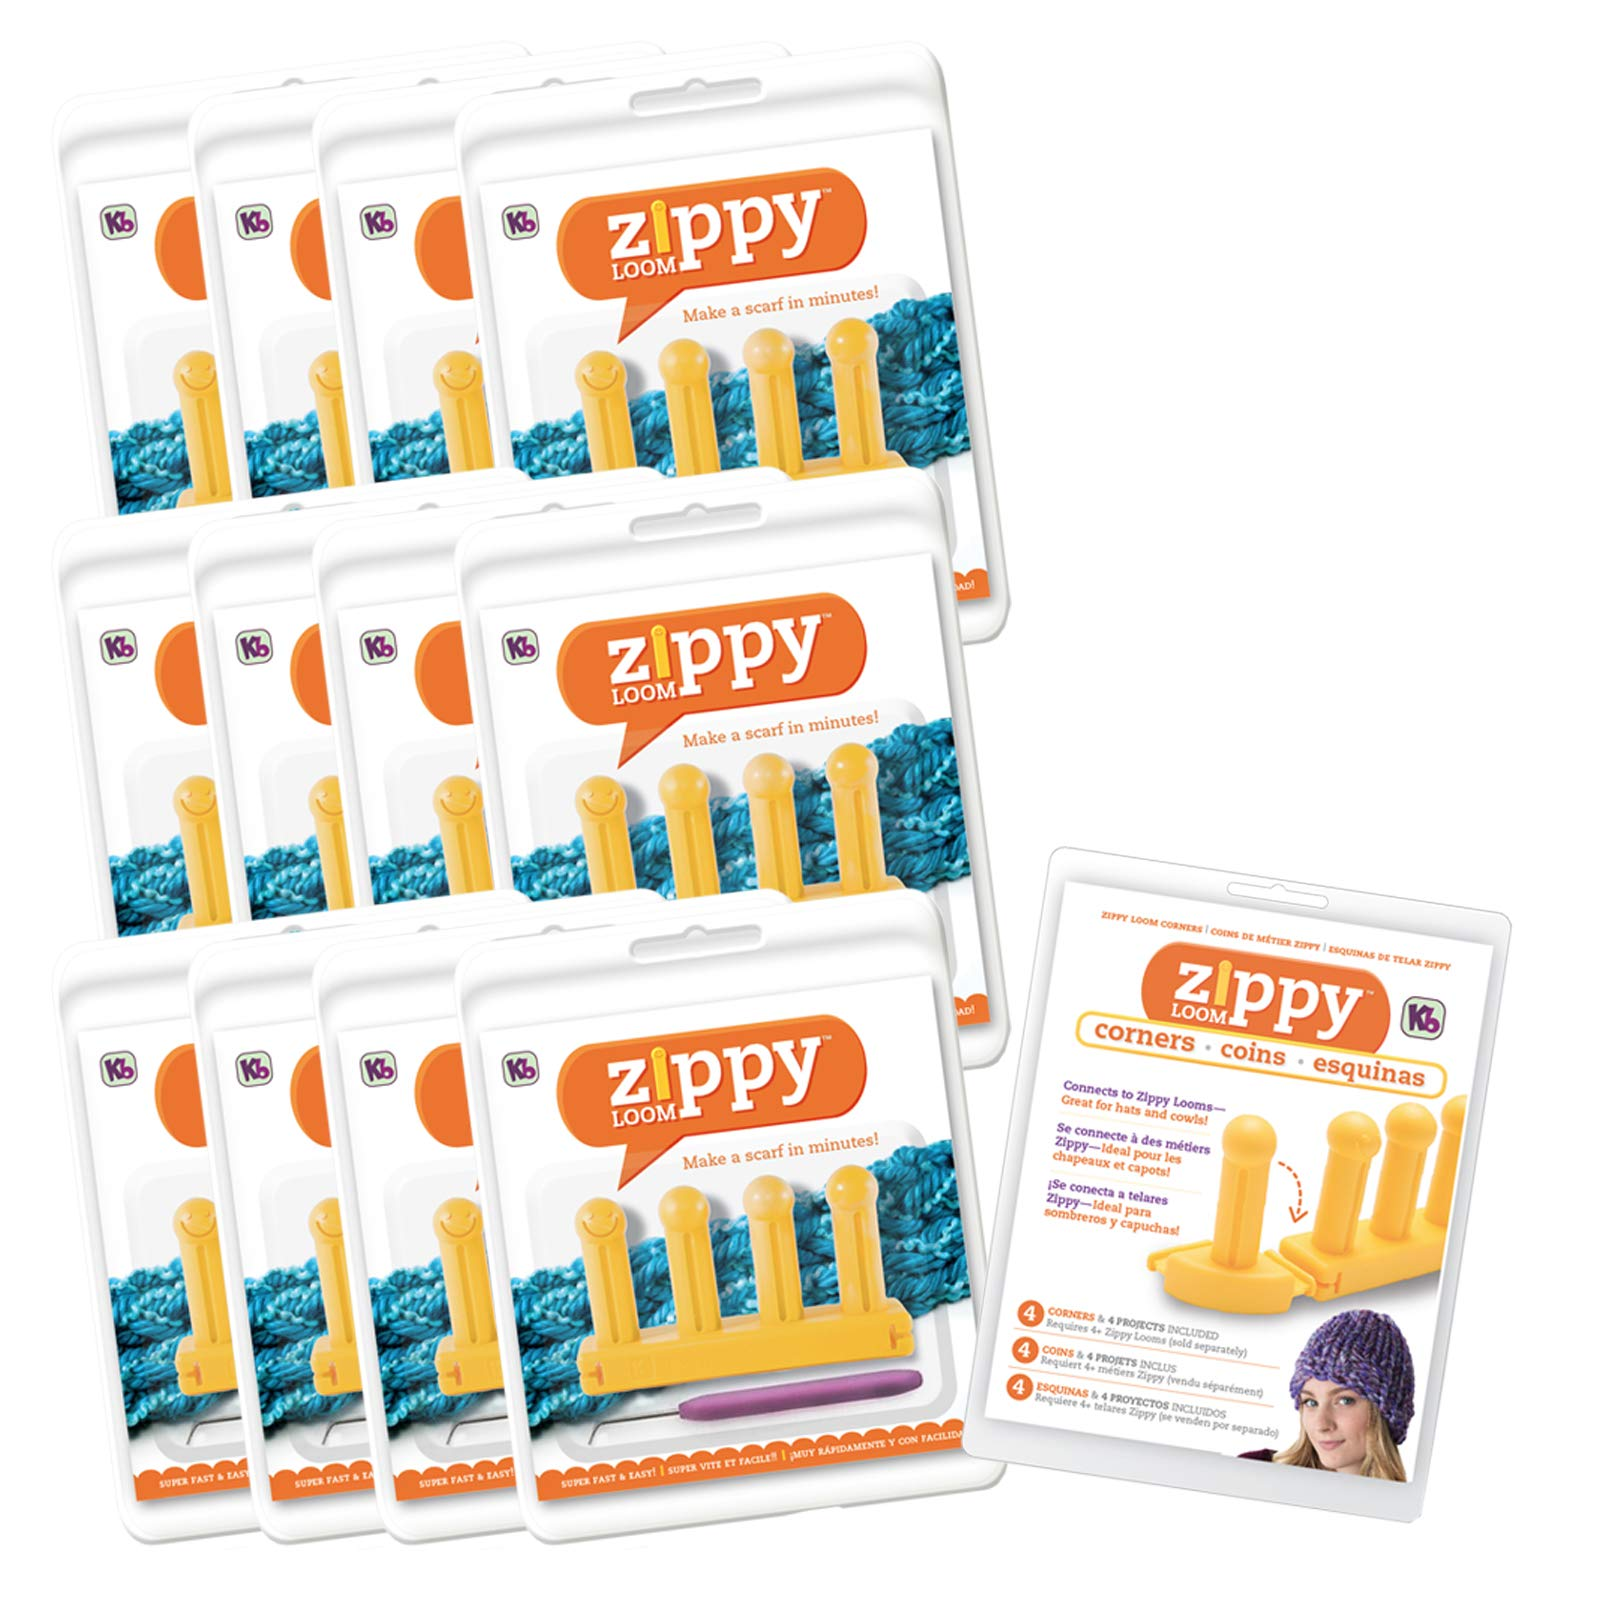 Authentic Knitting Board KB6012 Zippy Looms, Bulk, ((13 Pack) Piece